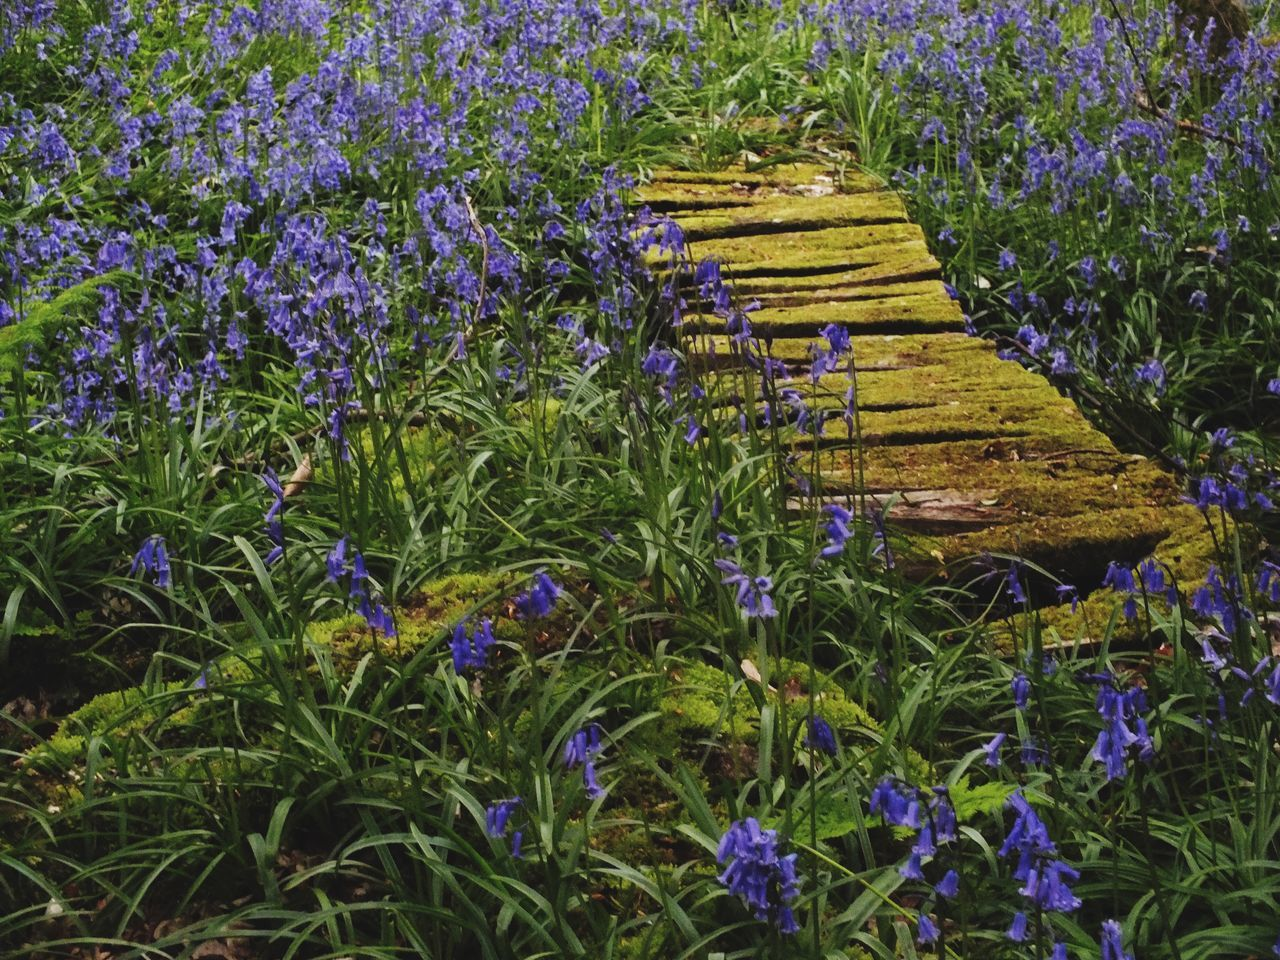 The woodland WoodLand Bluebells Enjoying Life Taking Photos Out For A Walk Flowers Landscape_photography The Great Outdoors - 2016 EyeEm Awards